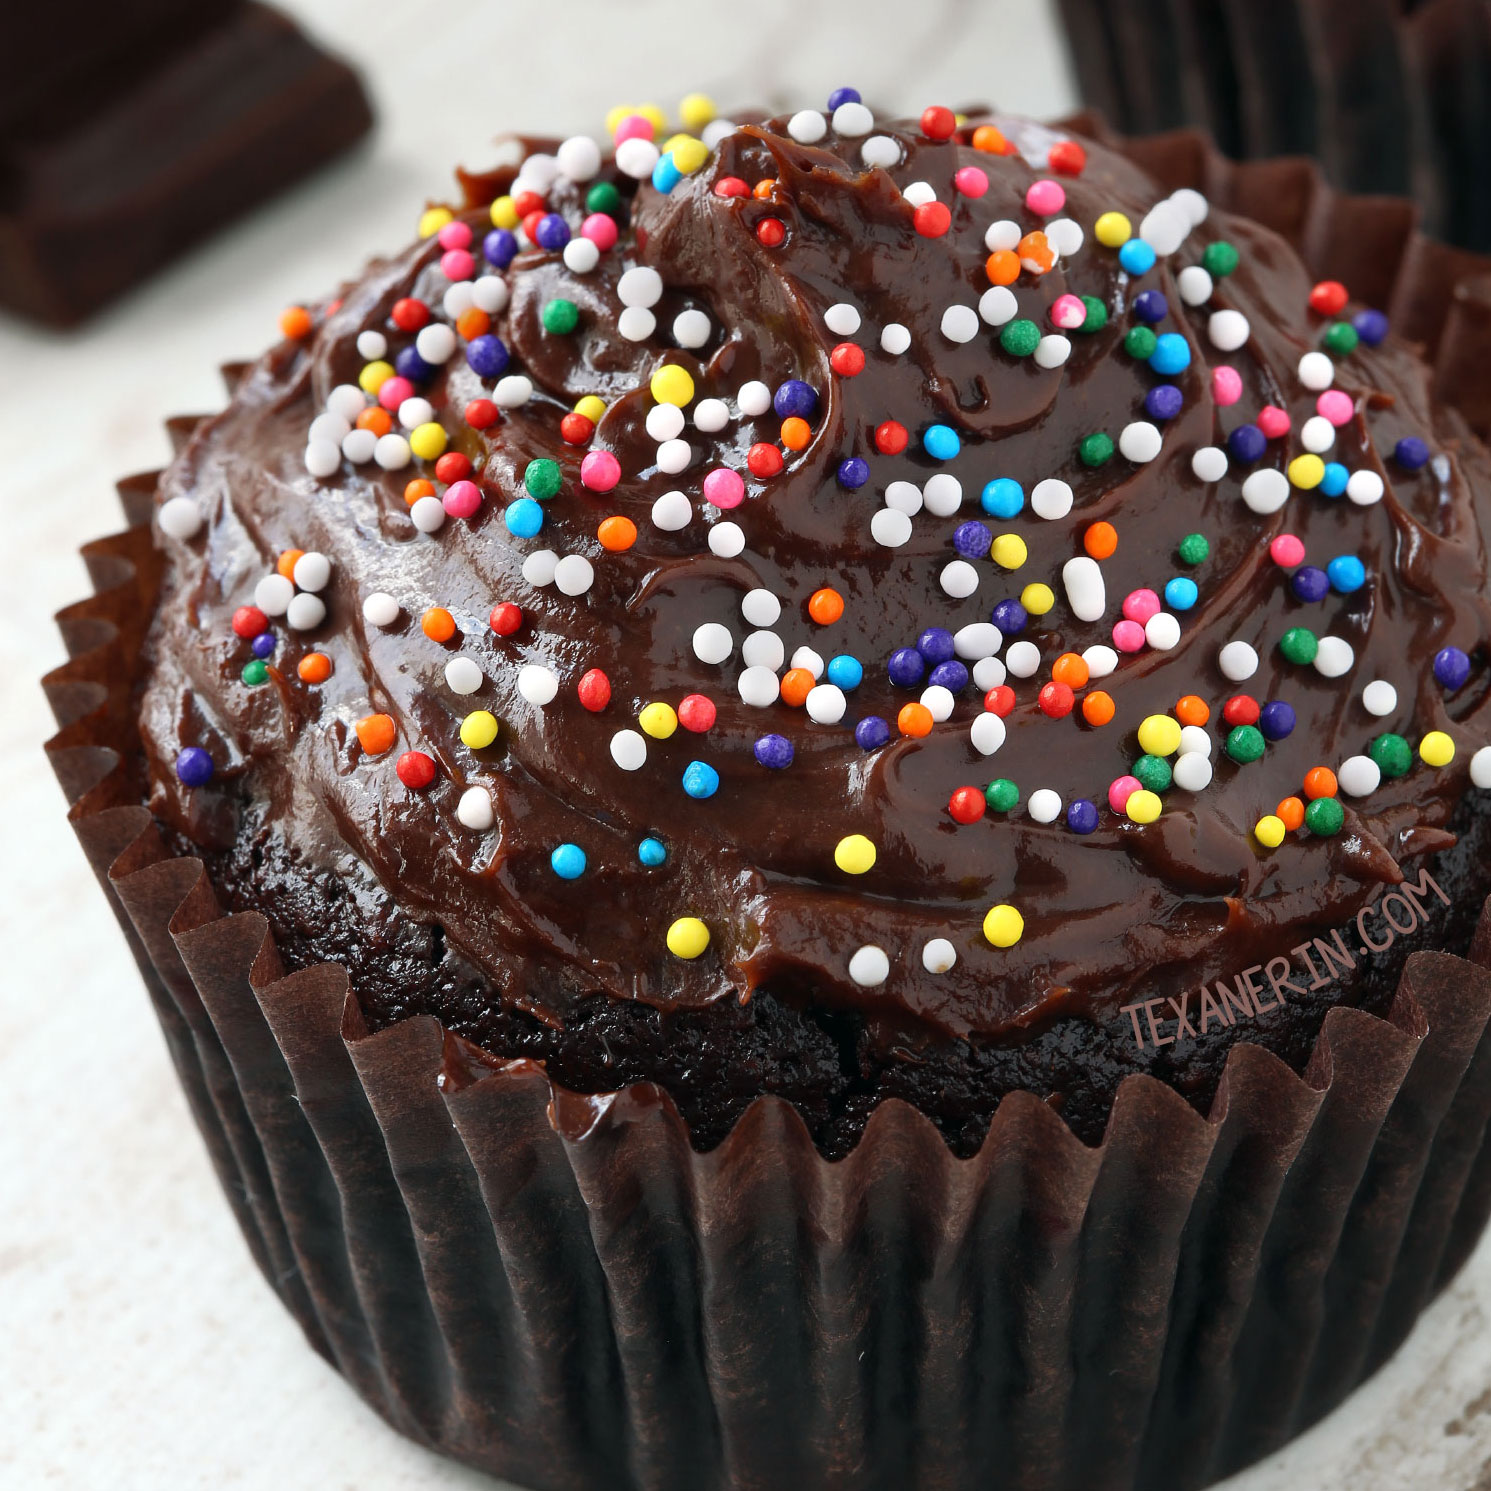 Chocolate cupcake recipe keto